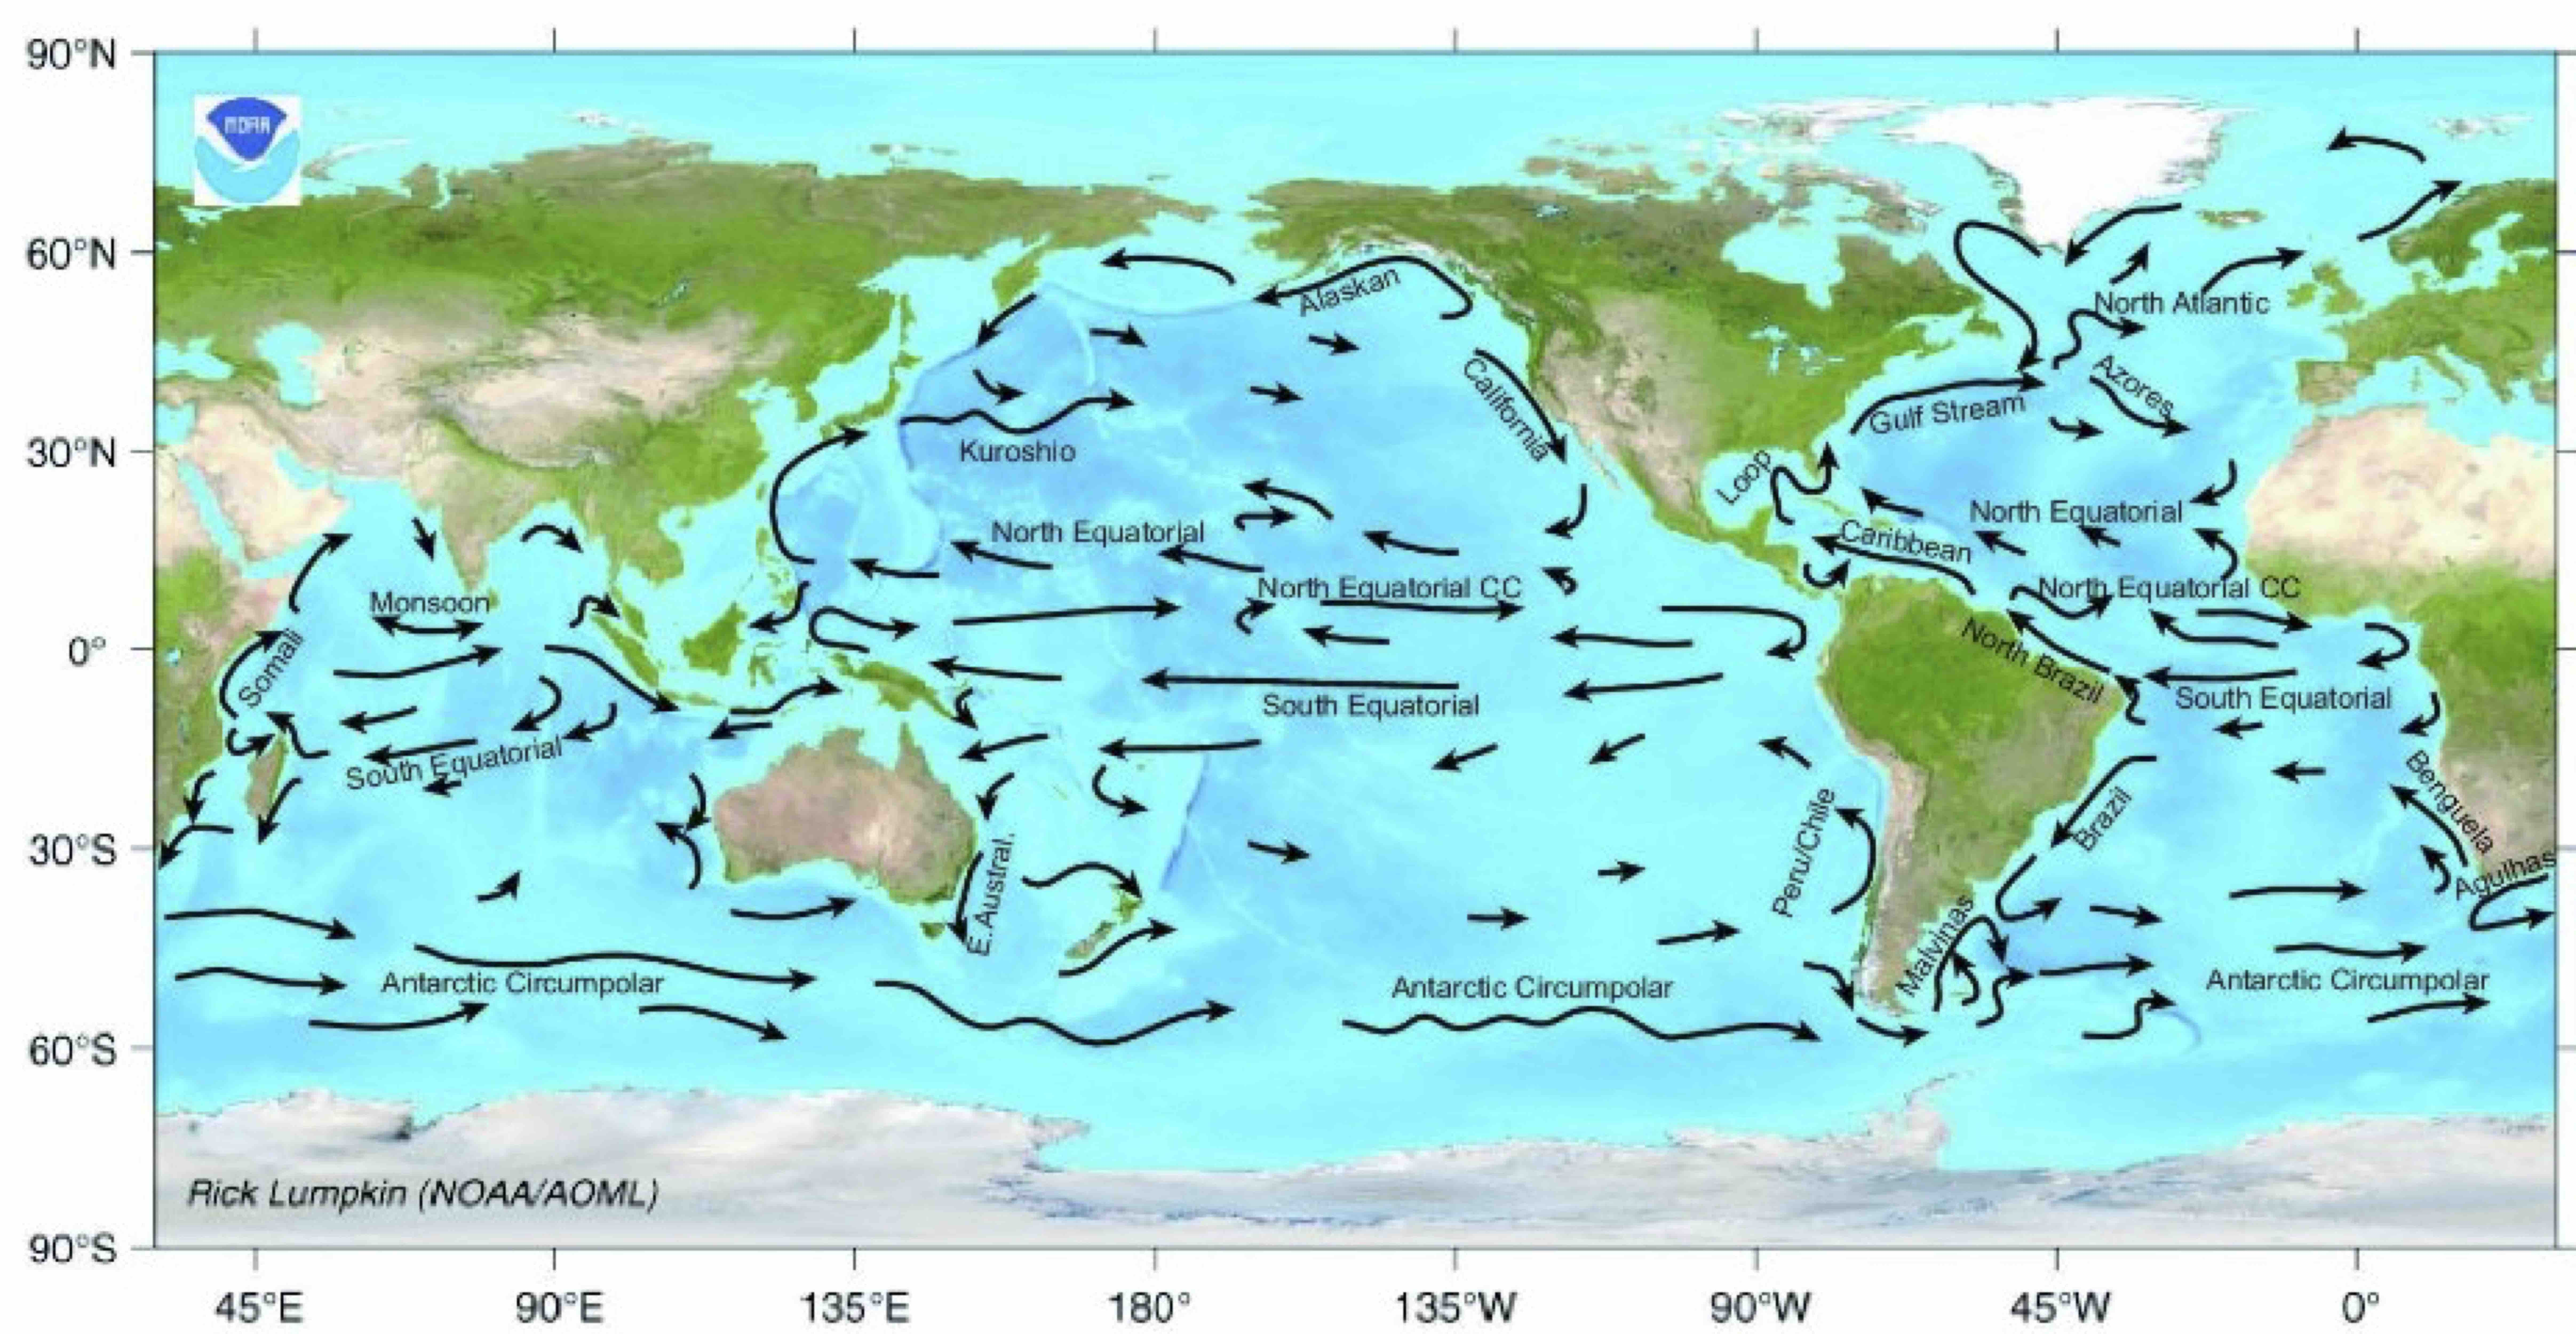 Ocean Currents Schematic